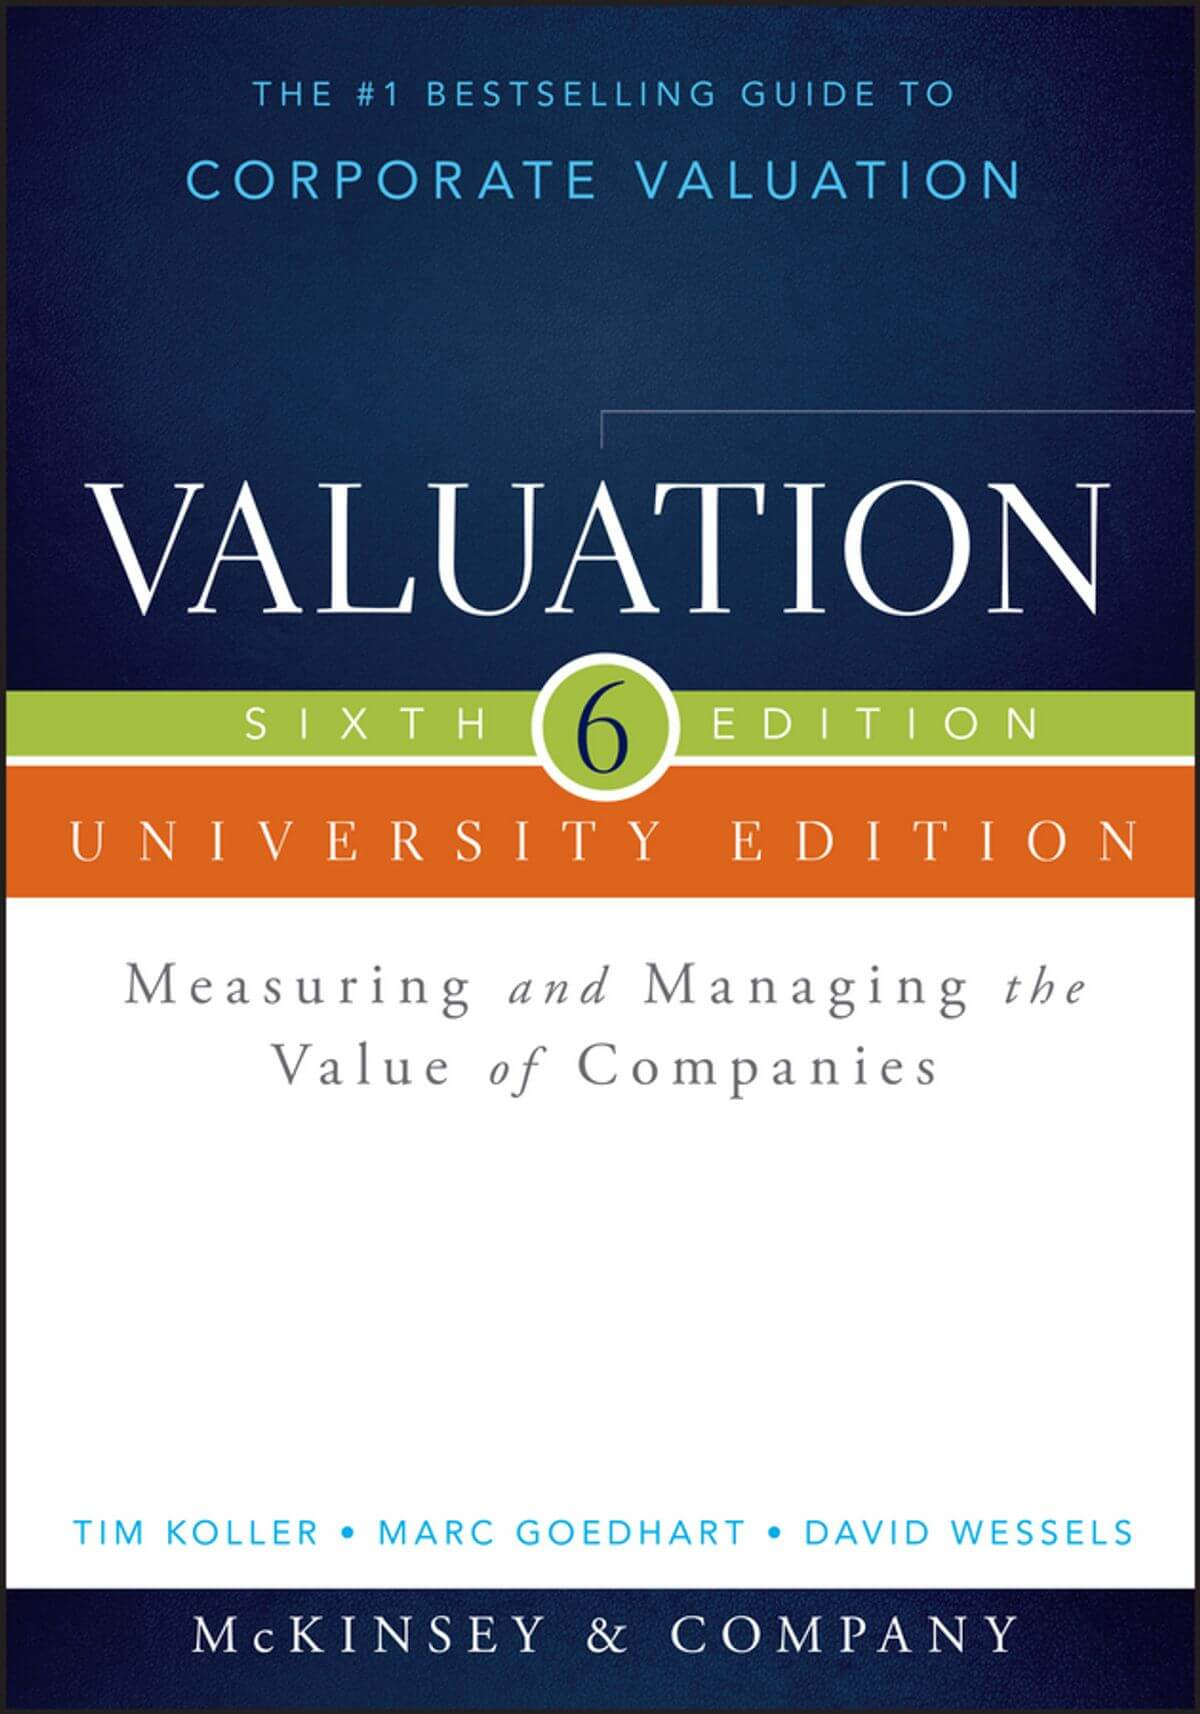 Management Books for MBA